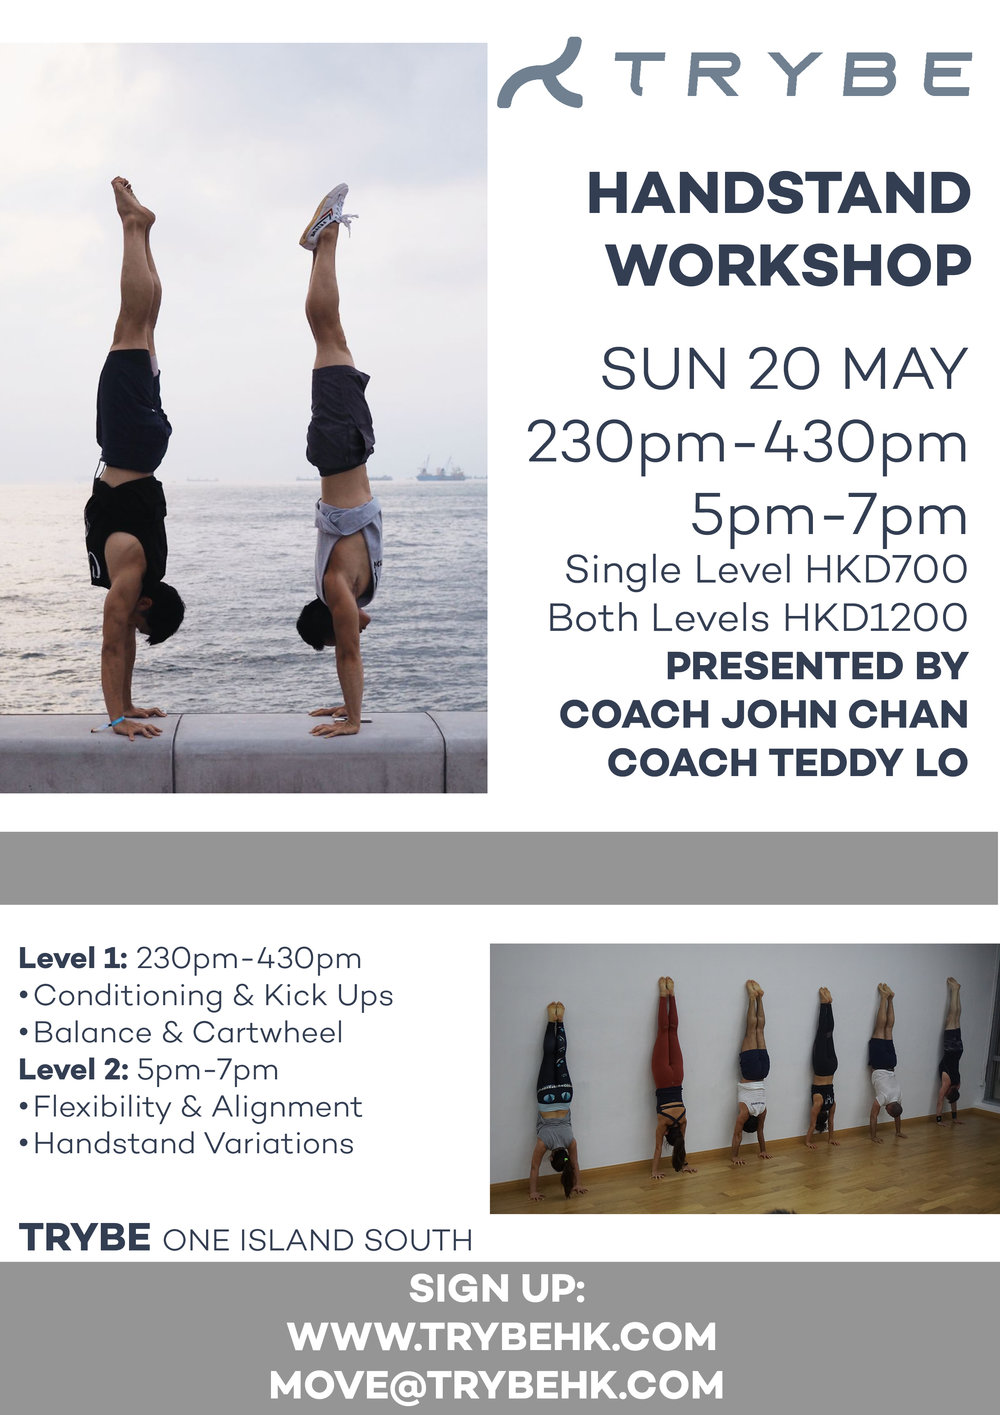 Handstands-Workshop-20-May-3.jpg